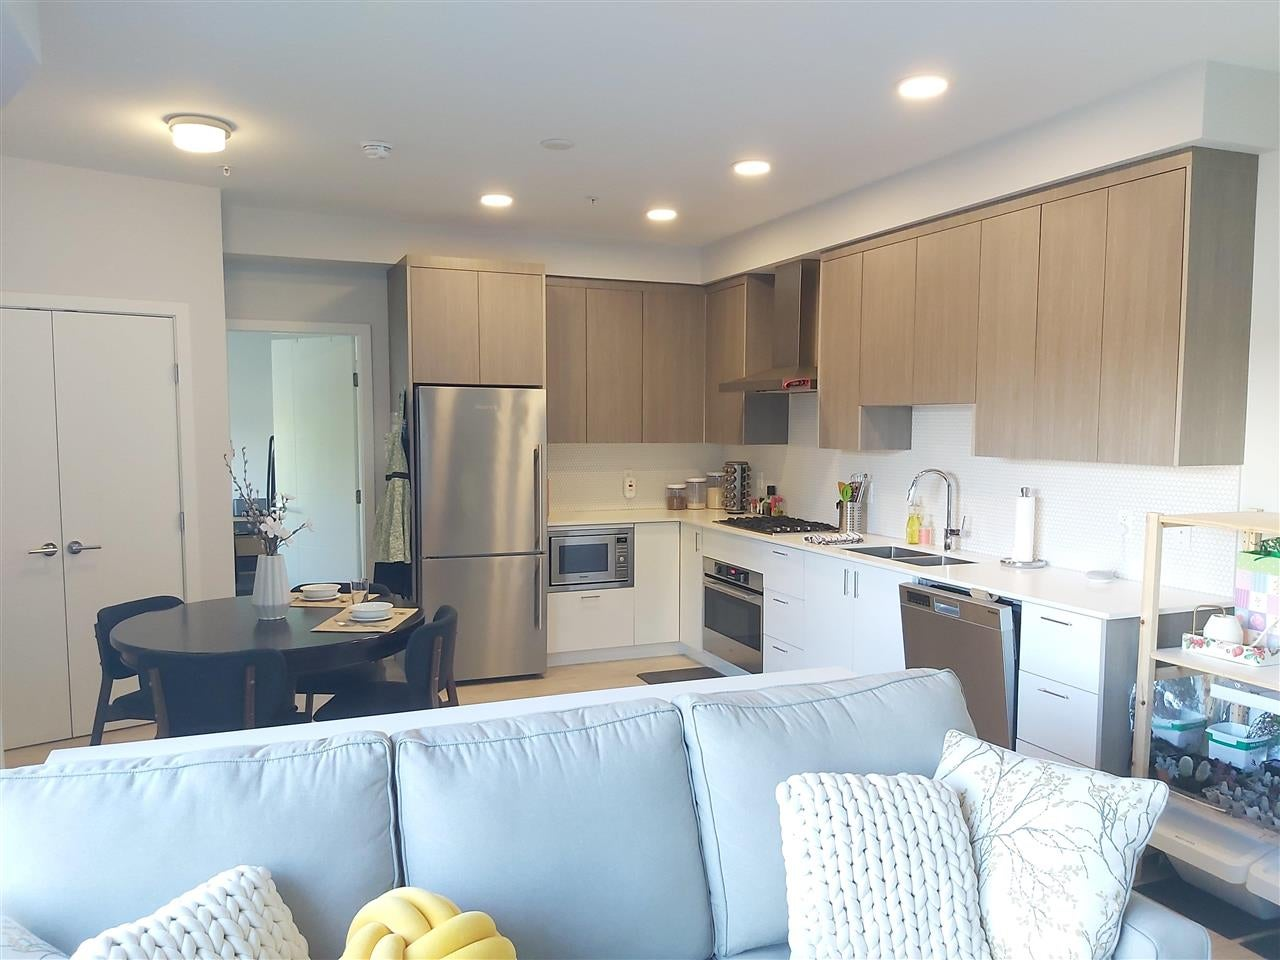 219 6283 KINGSWAY - Highgate Apartment/Condo for sale, 2 Bedrooms (R2576169) - #4